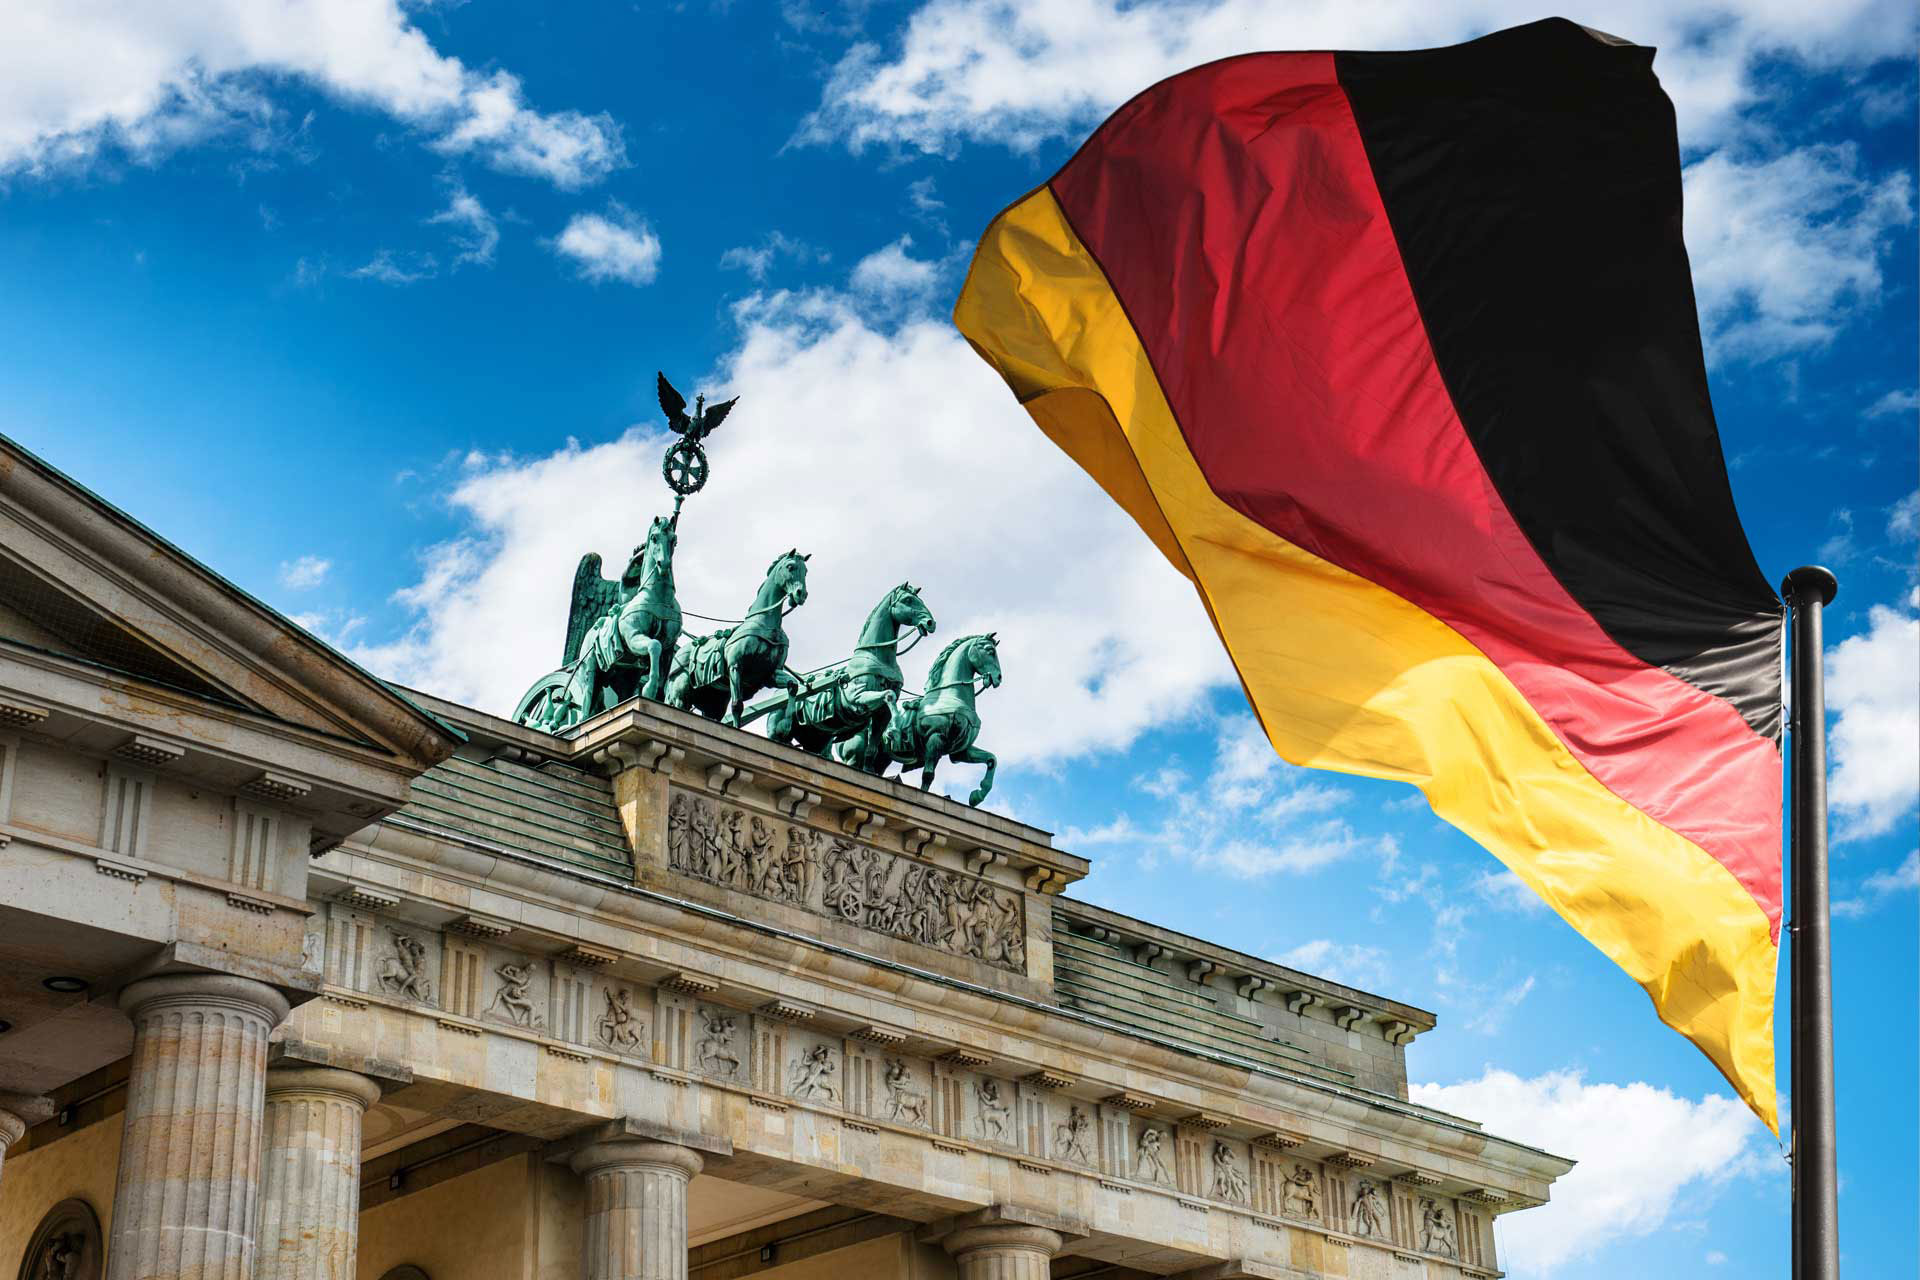 Image representing German and History